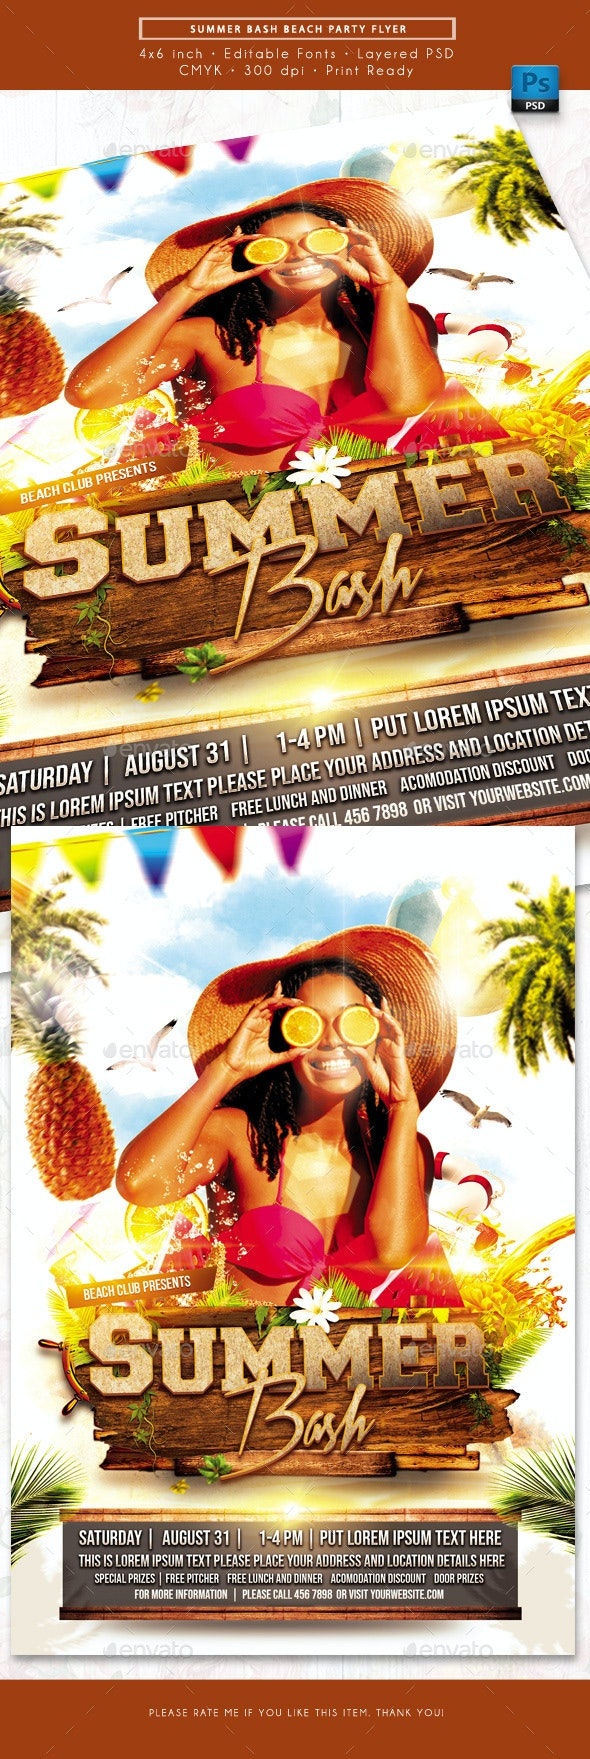 Summer Bash Beach Party Event Flyer - Events Flyers